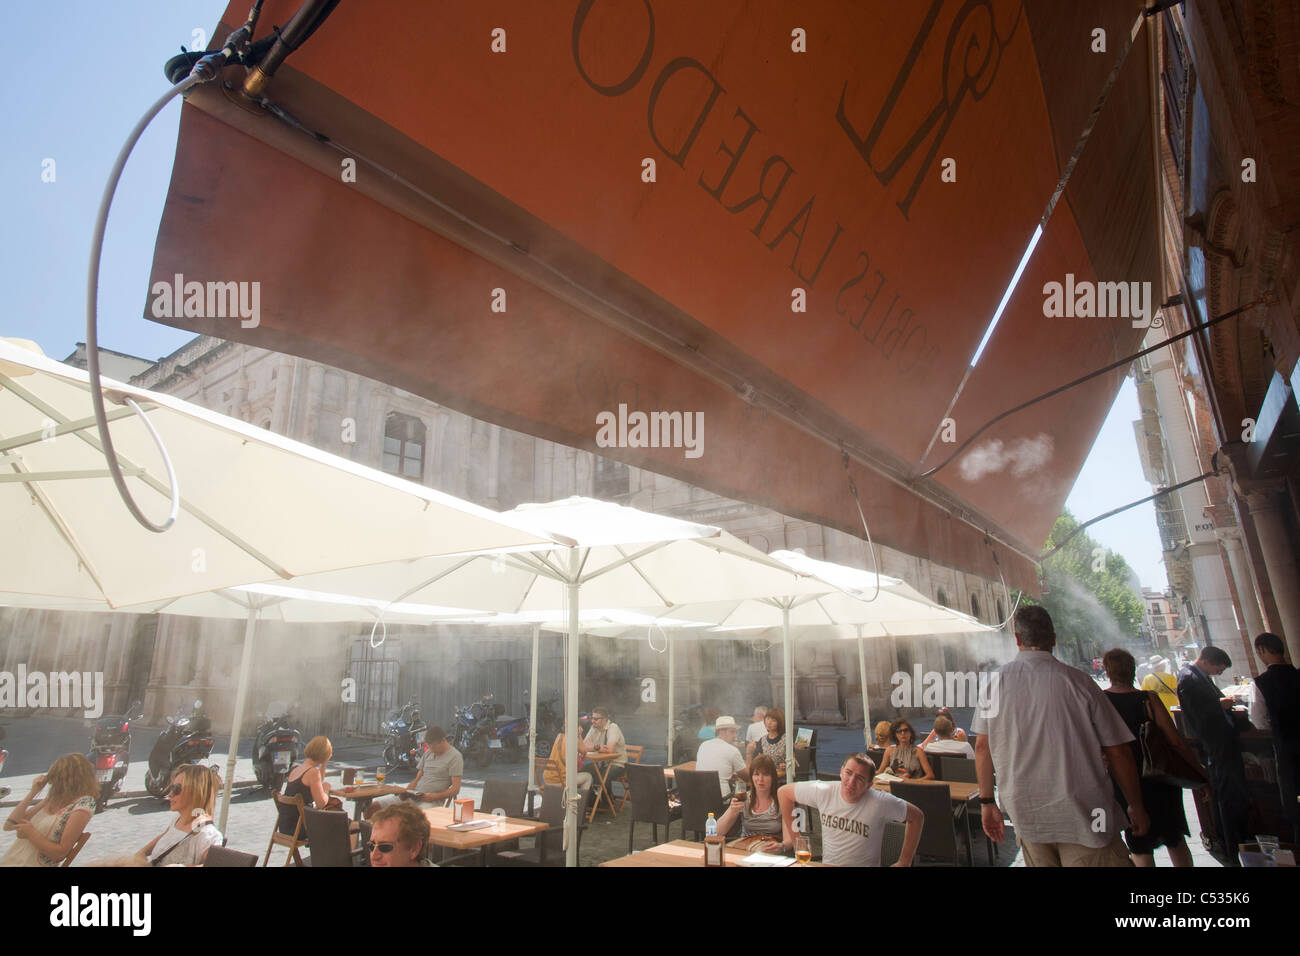 A cafe cooling customers down with a misting system during a heat wave in Seville, Spain. - Stock Image